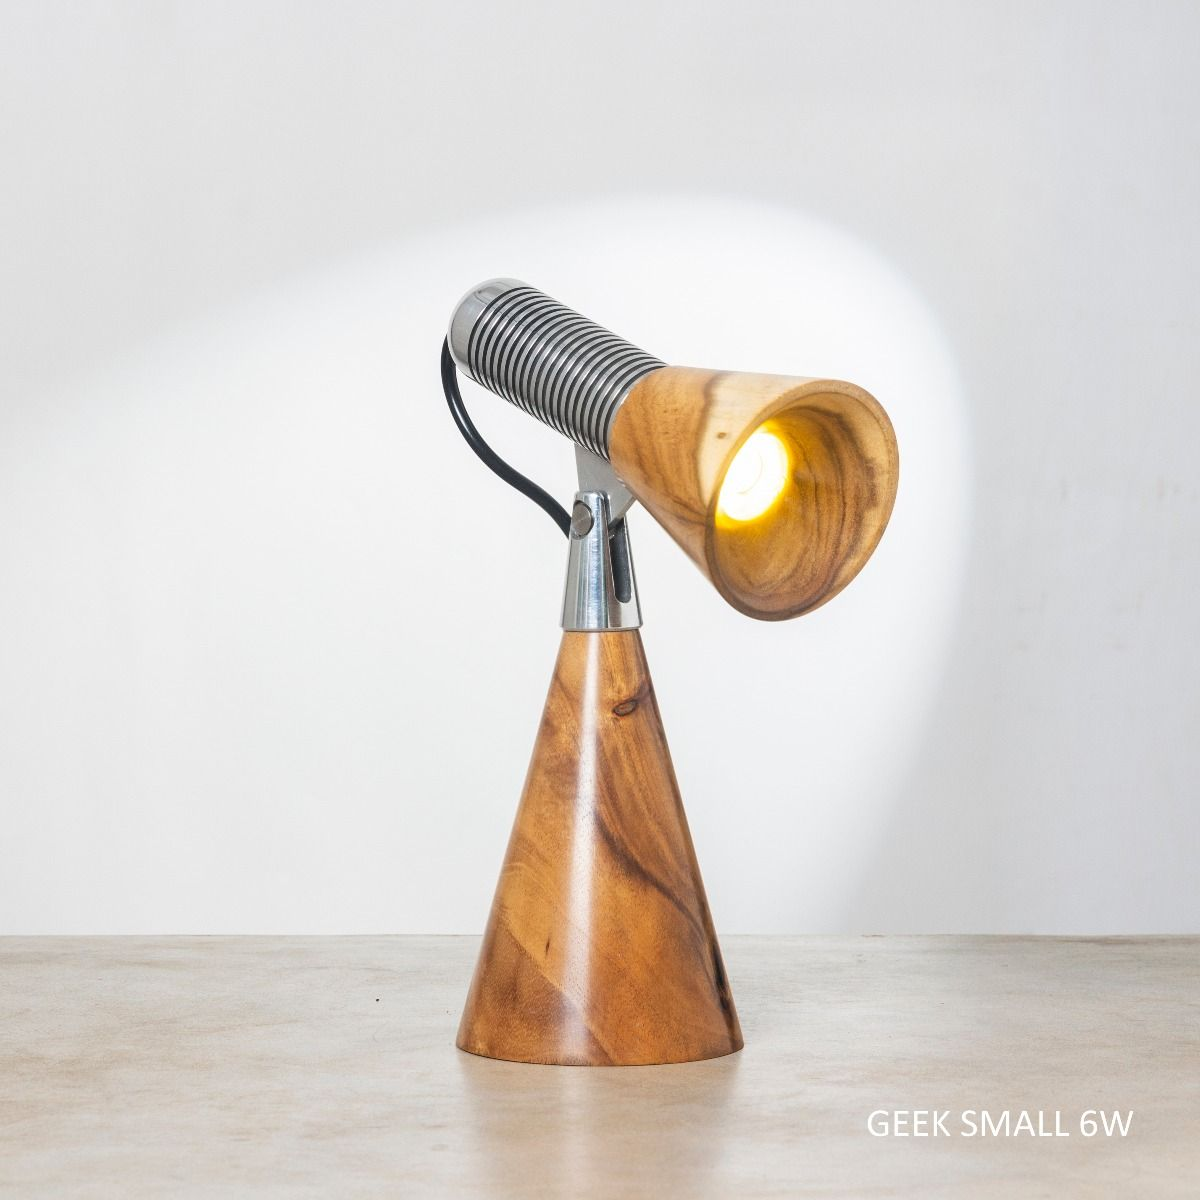 Geek S 6W Table Lamp